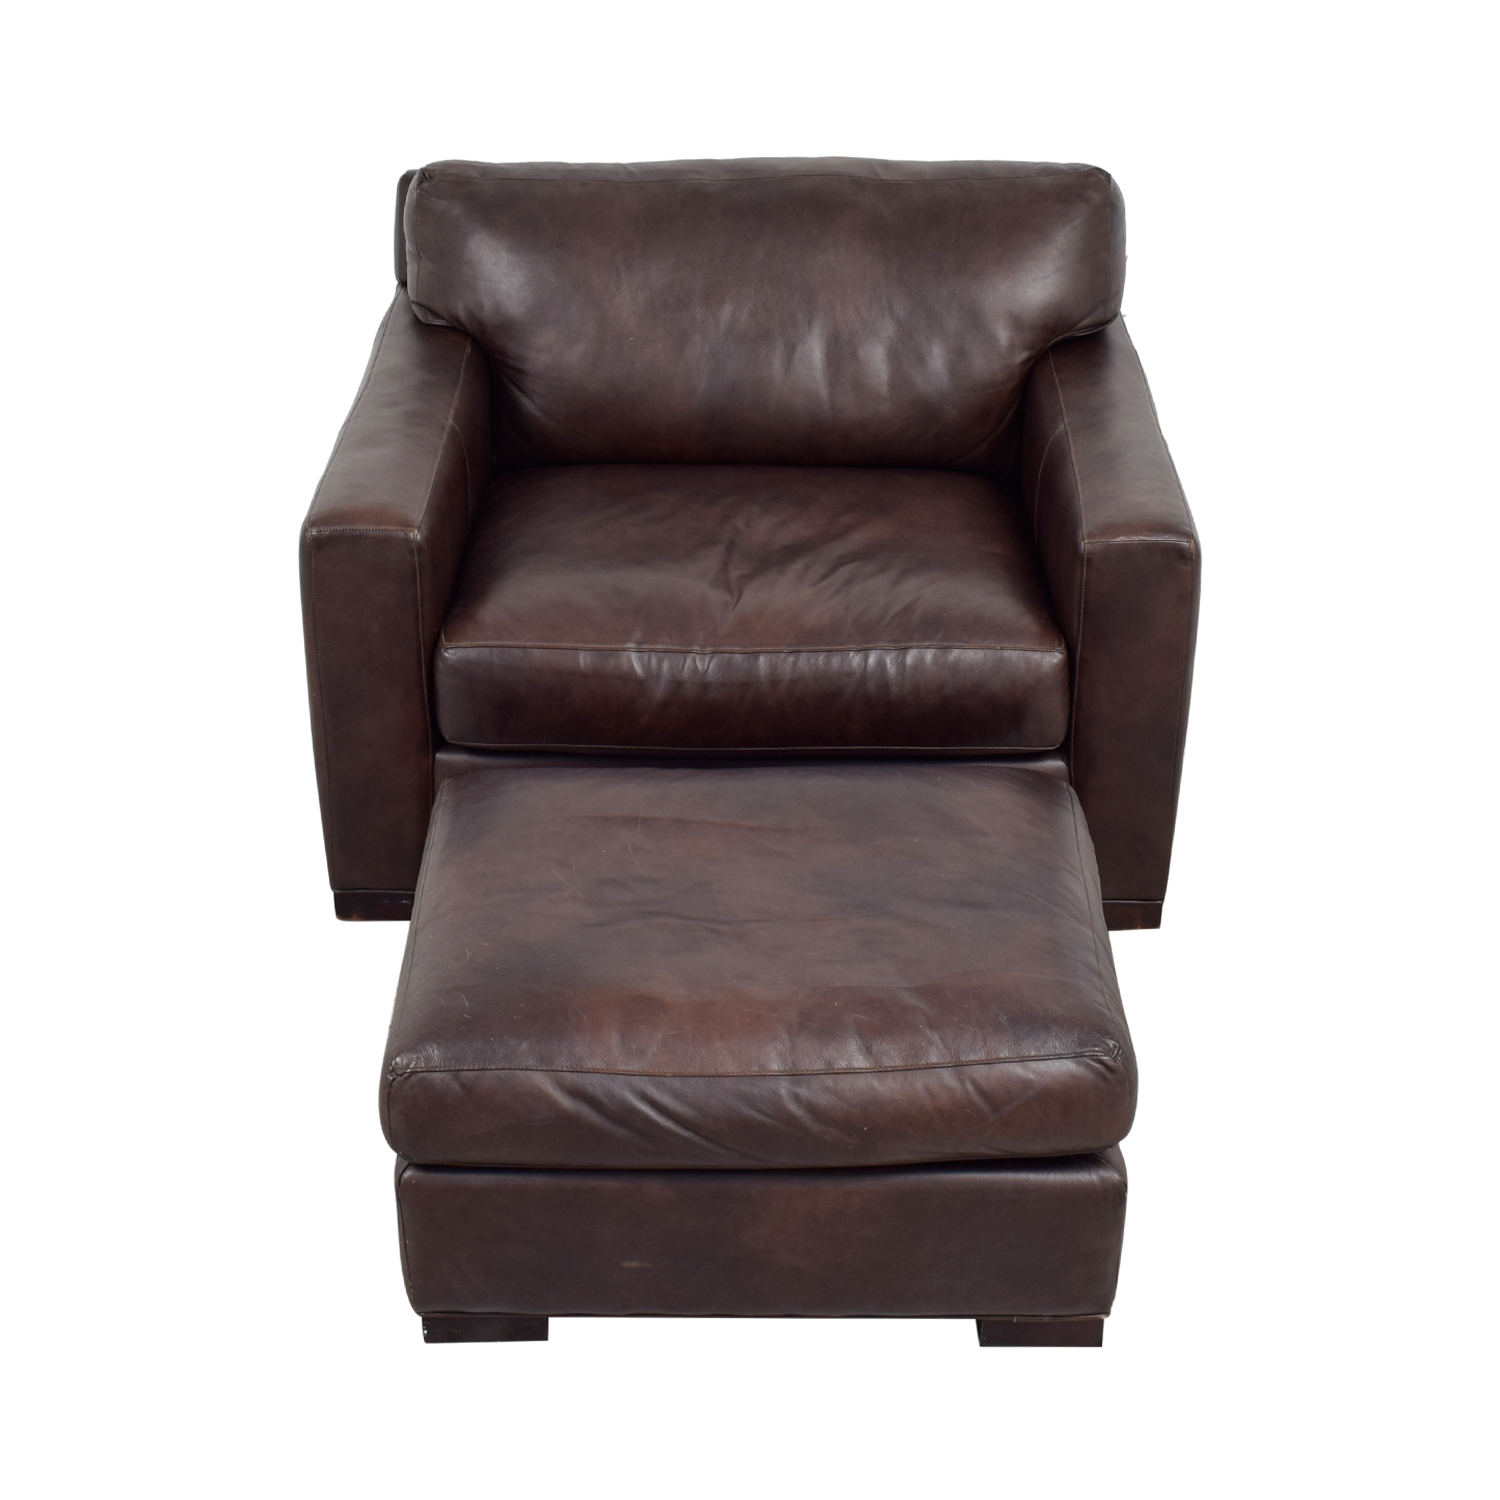 Leather Chair And Ottoman Crate Barrel Axis Ii Leather Chair Ottoman